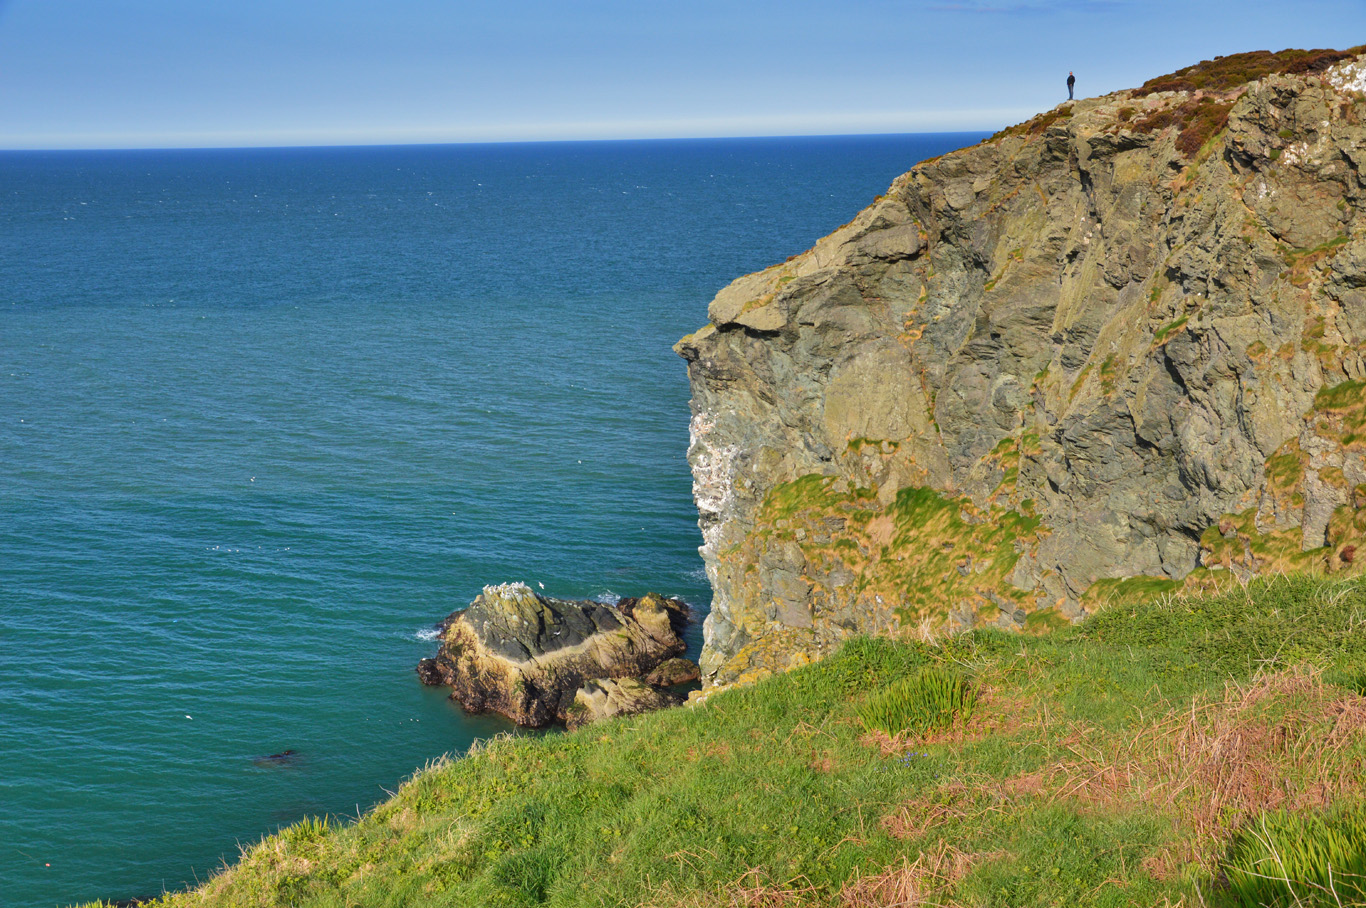 Standing on a cliff edge